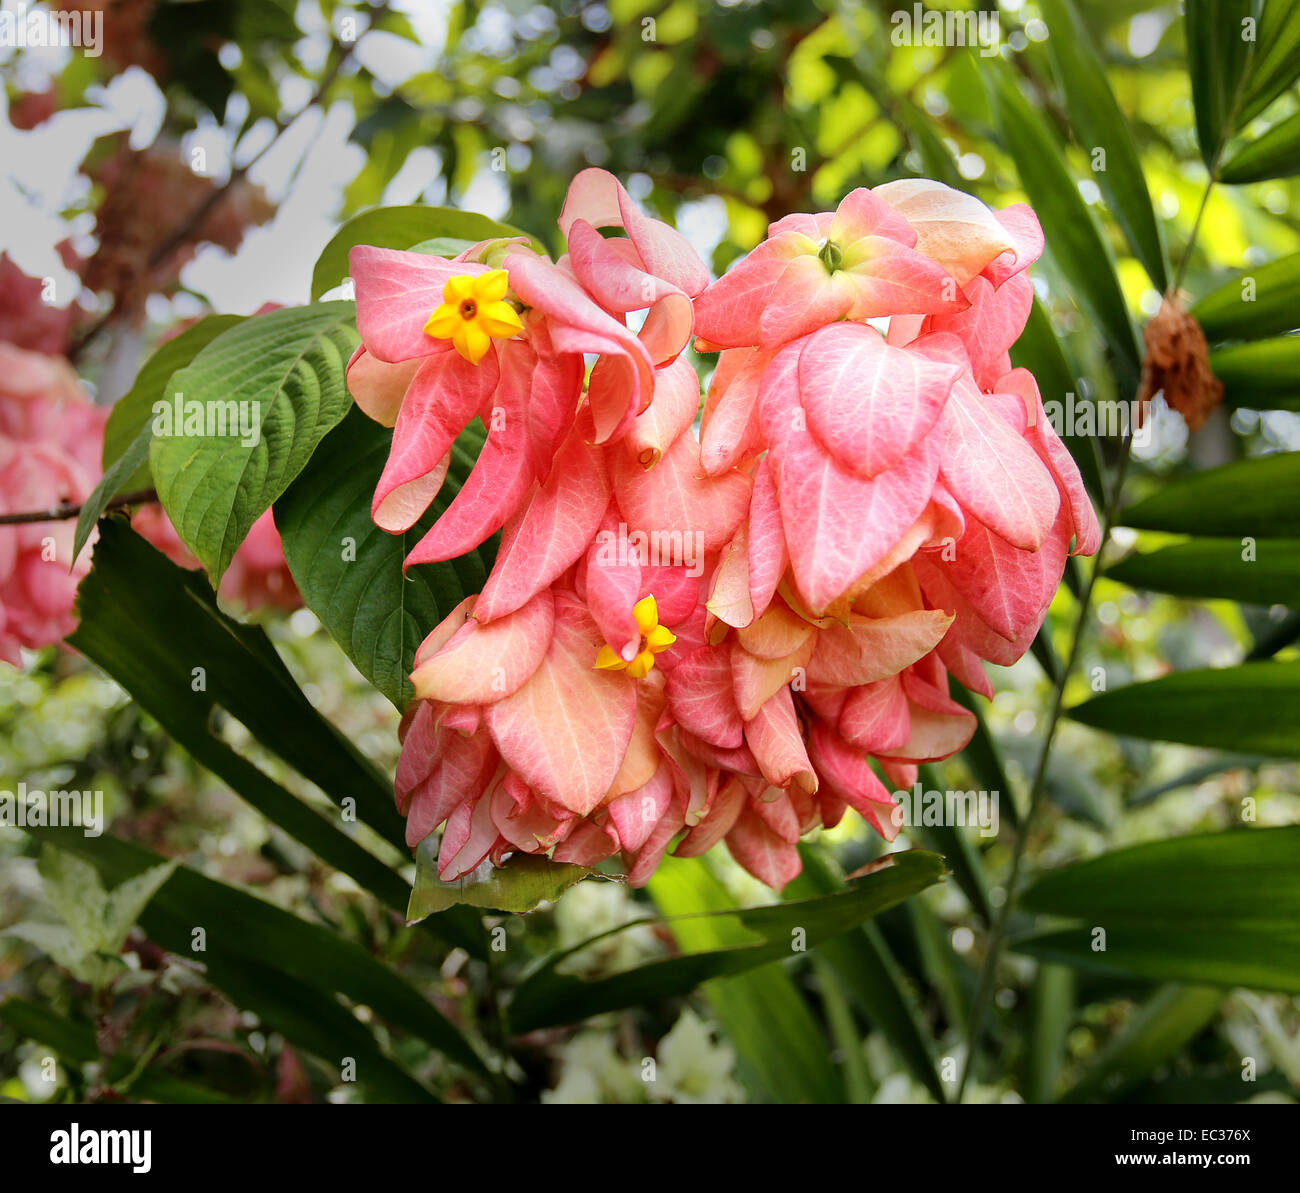 Photo pink beautiful tropical flowers and leaves during the day photo pink beautiful tropical flowers and leaves during the day izmirmasajfo